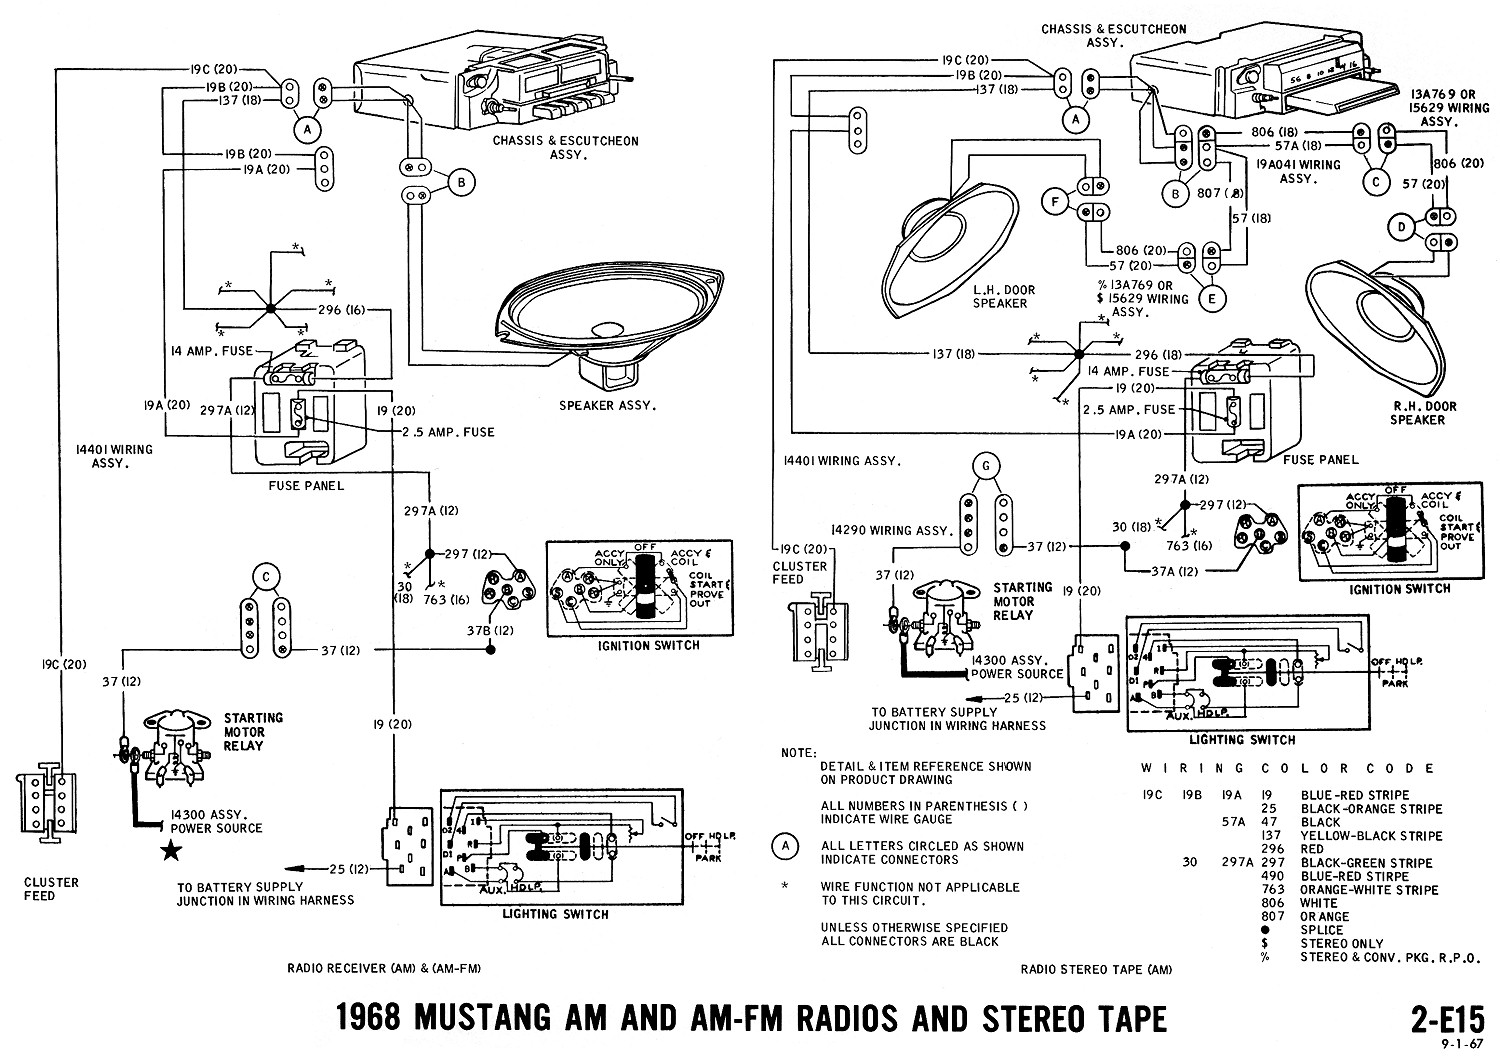 Mustang Radio Wire Harness